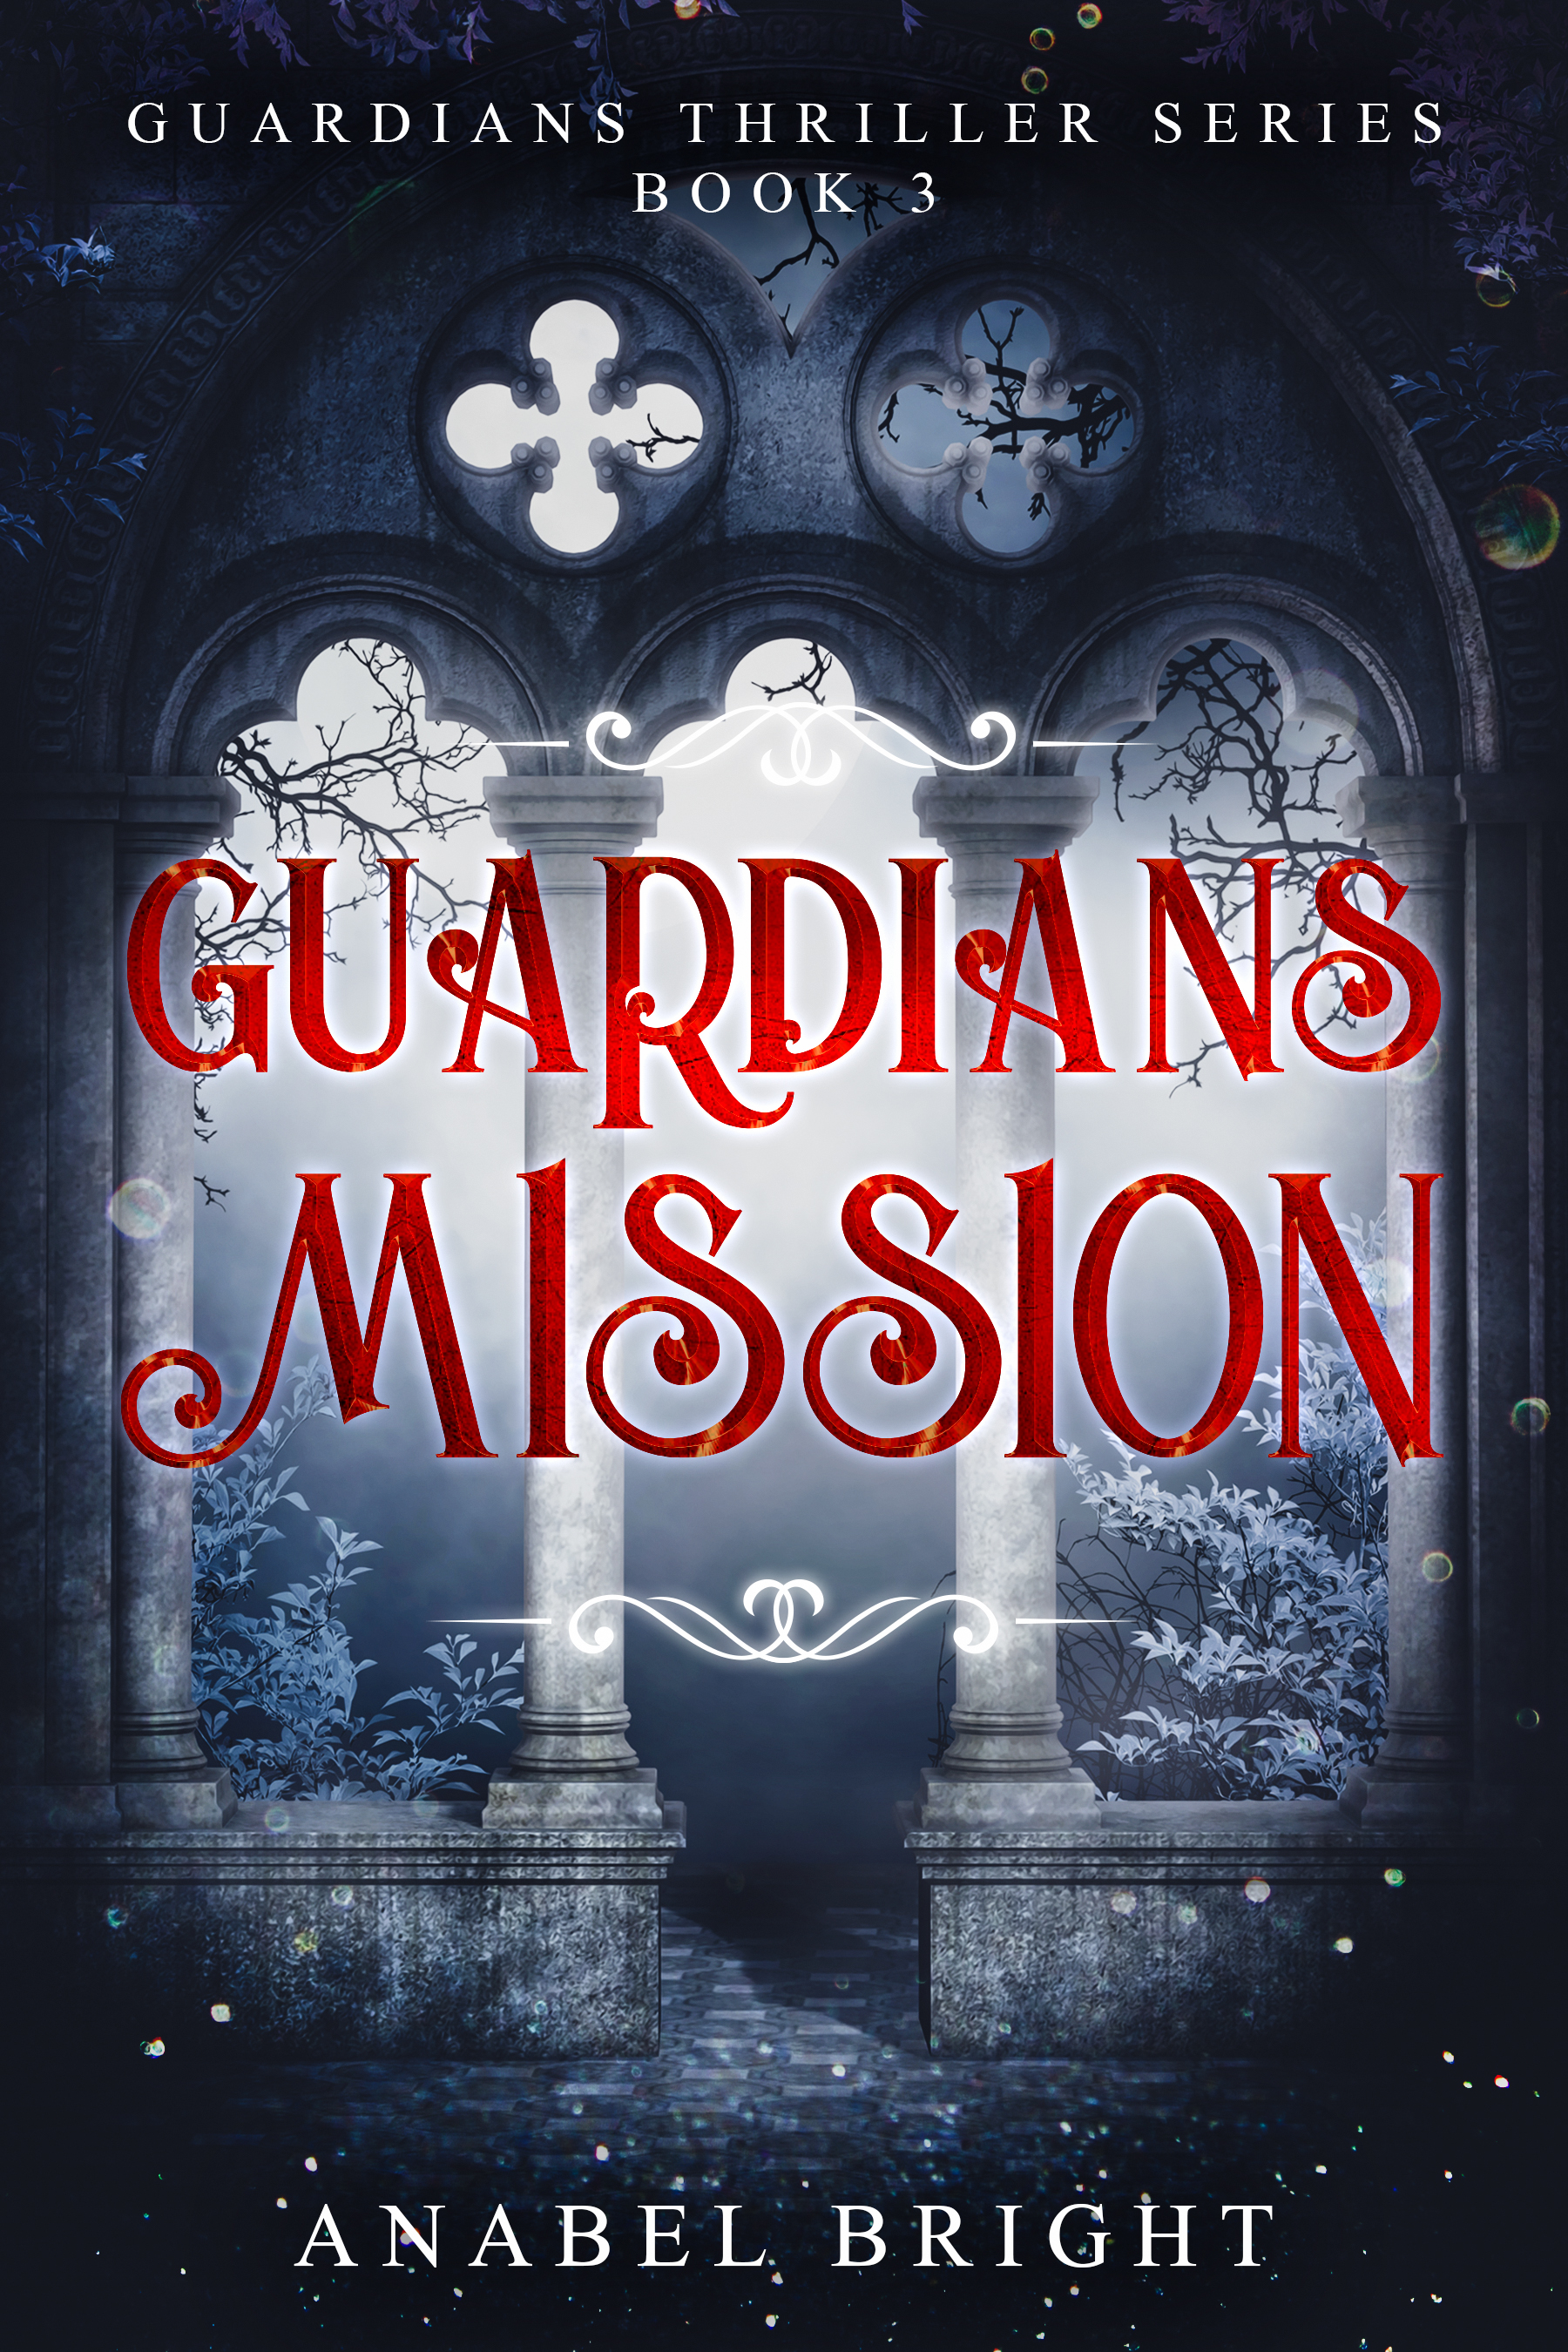 [PDF] [EPUB] Guardians Mission:  Evil Returns to Lupert  (Guardians Thriller Series, Book 3 of 5) Download by Anabel Bright